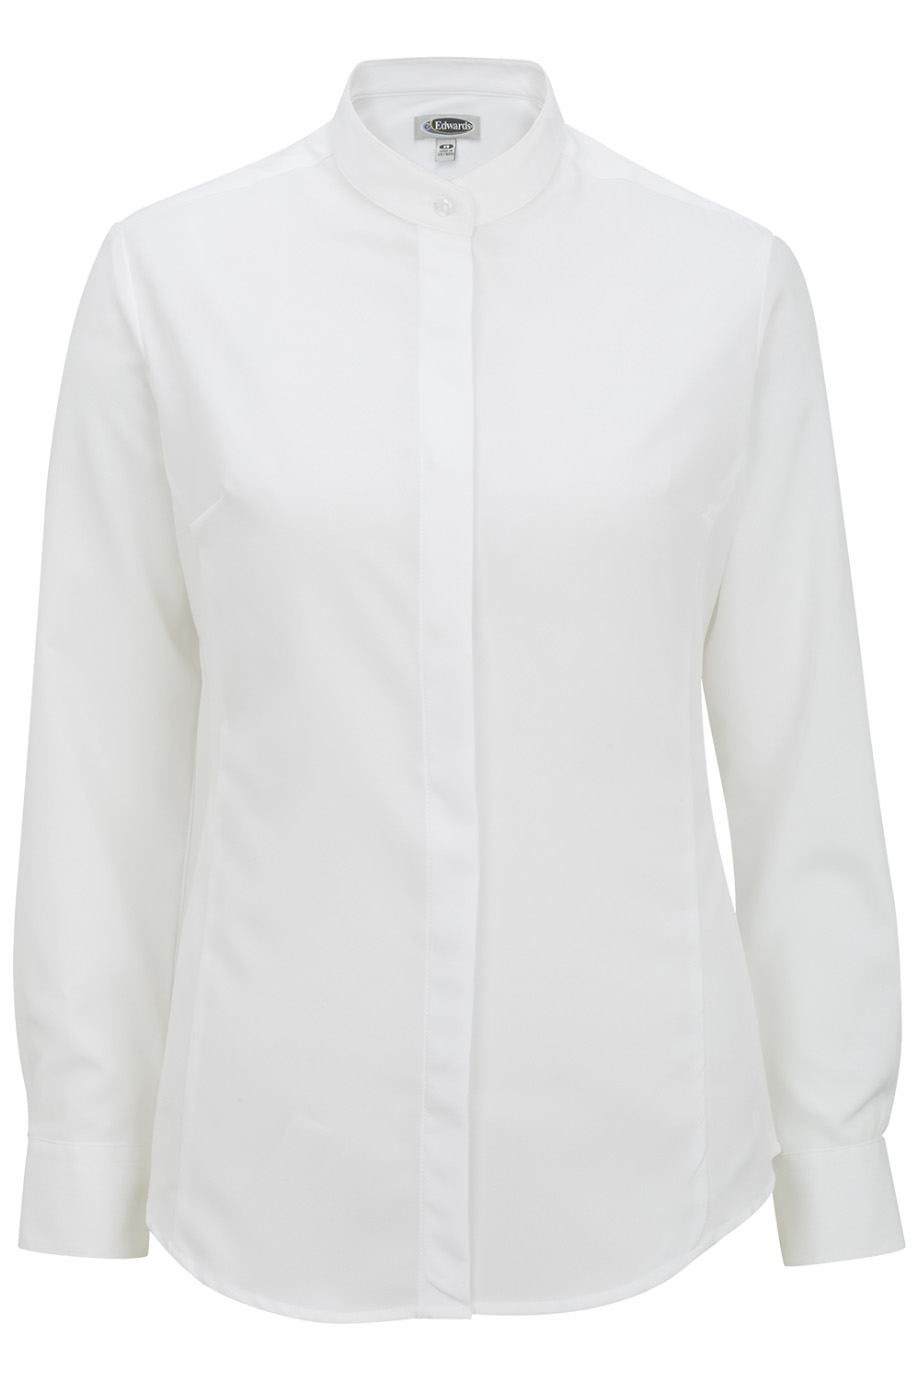 Emerson Uniforms Womens Batiste Banded Collar Shirt 5392